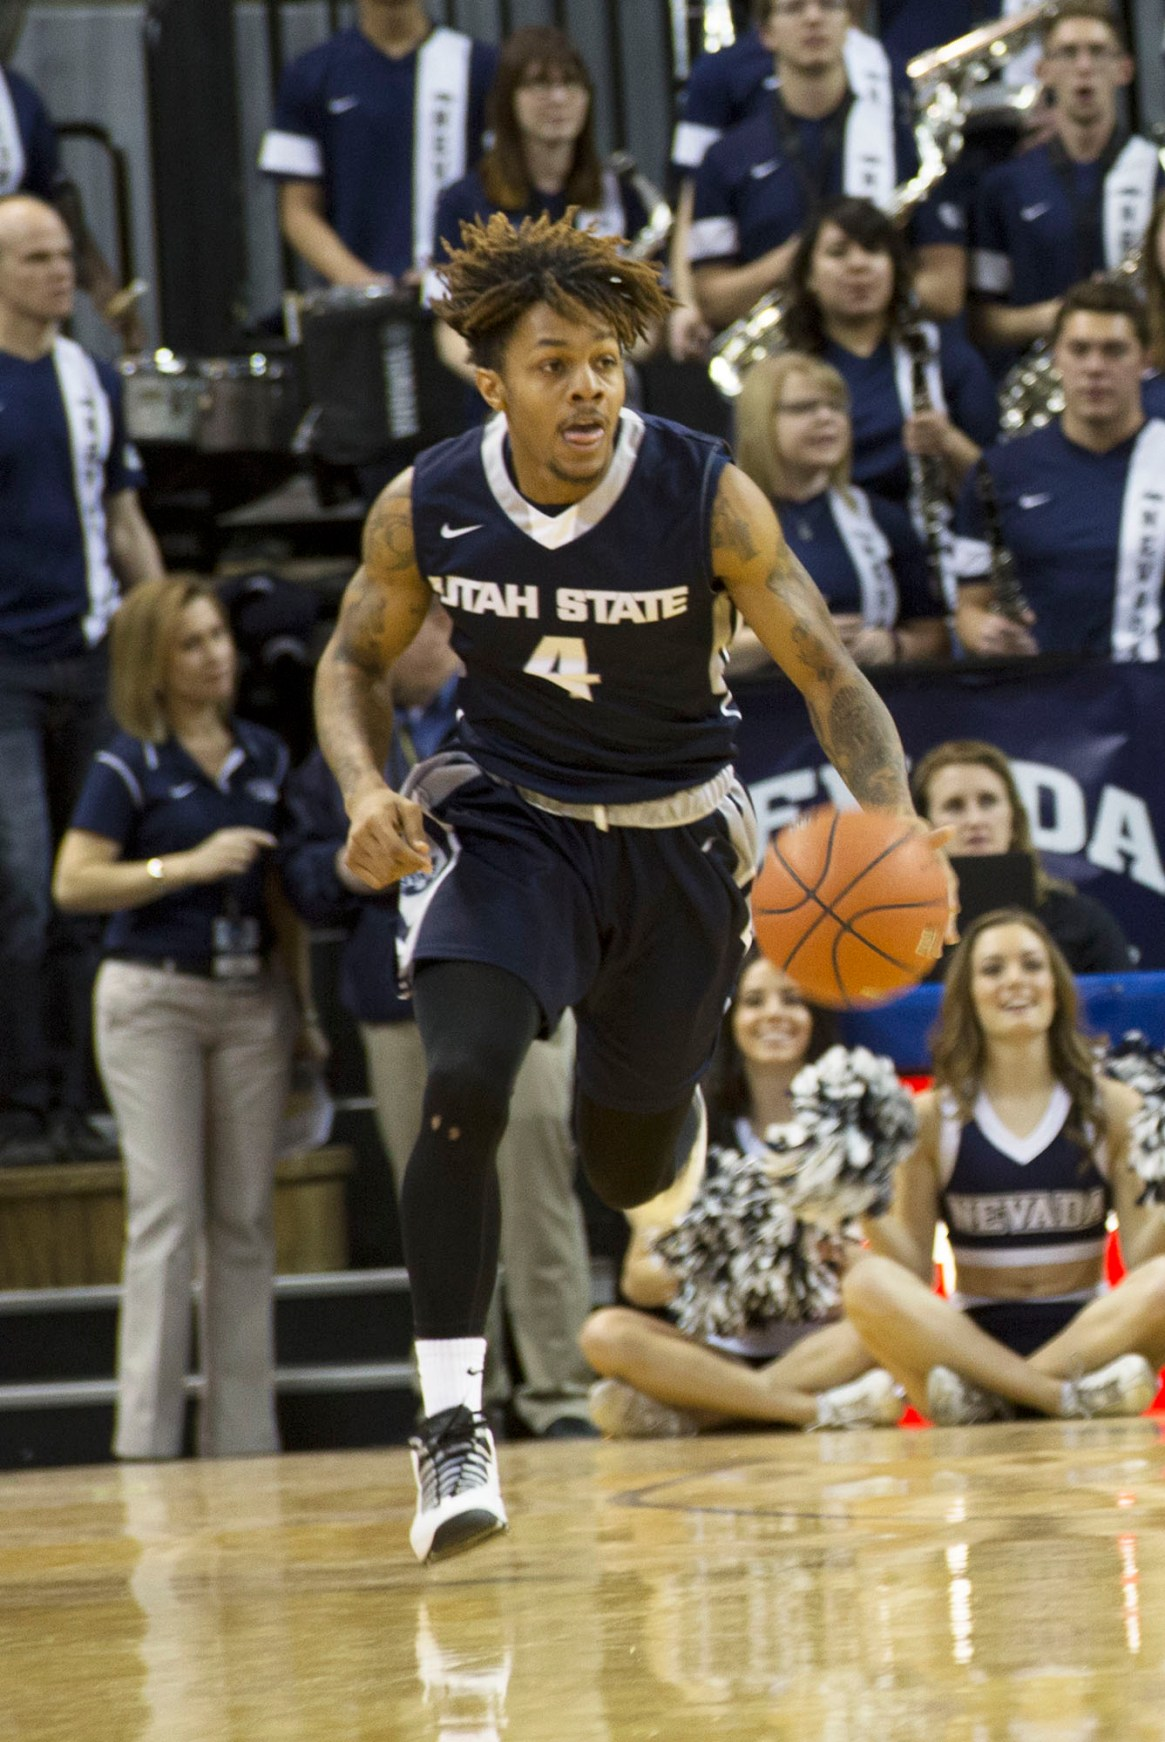 Shane Rector, Junior, played an excellent game againt The Universty of Nevada Reno.